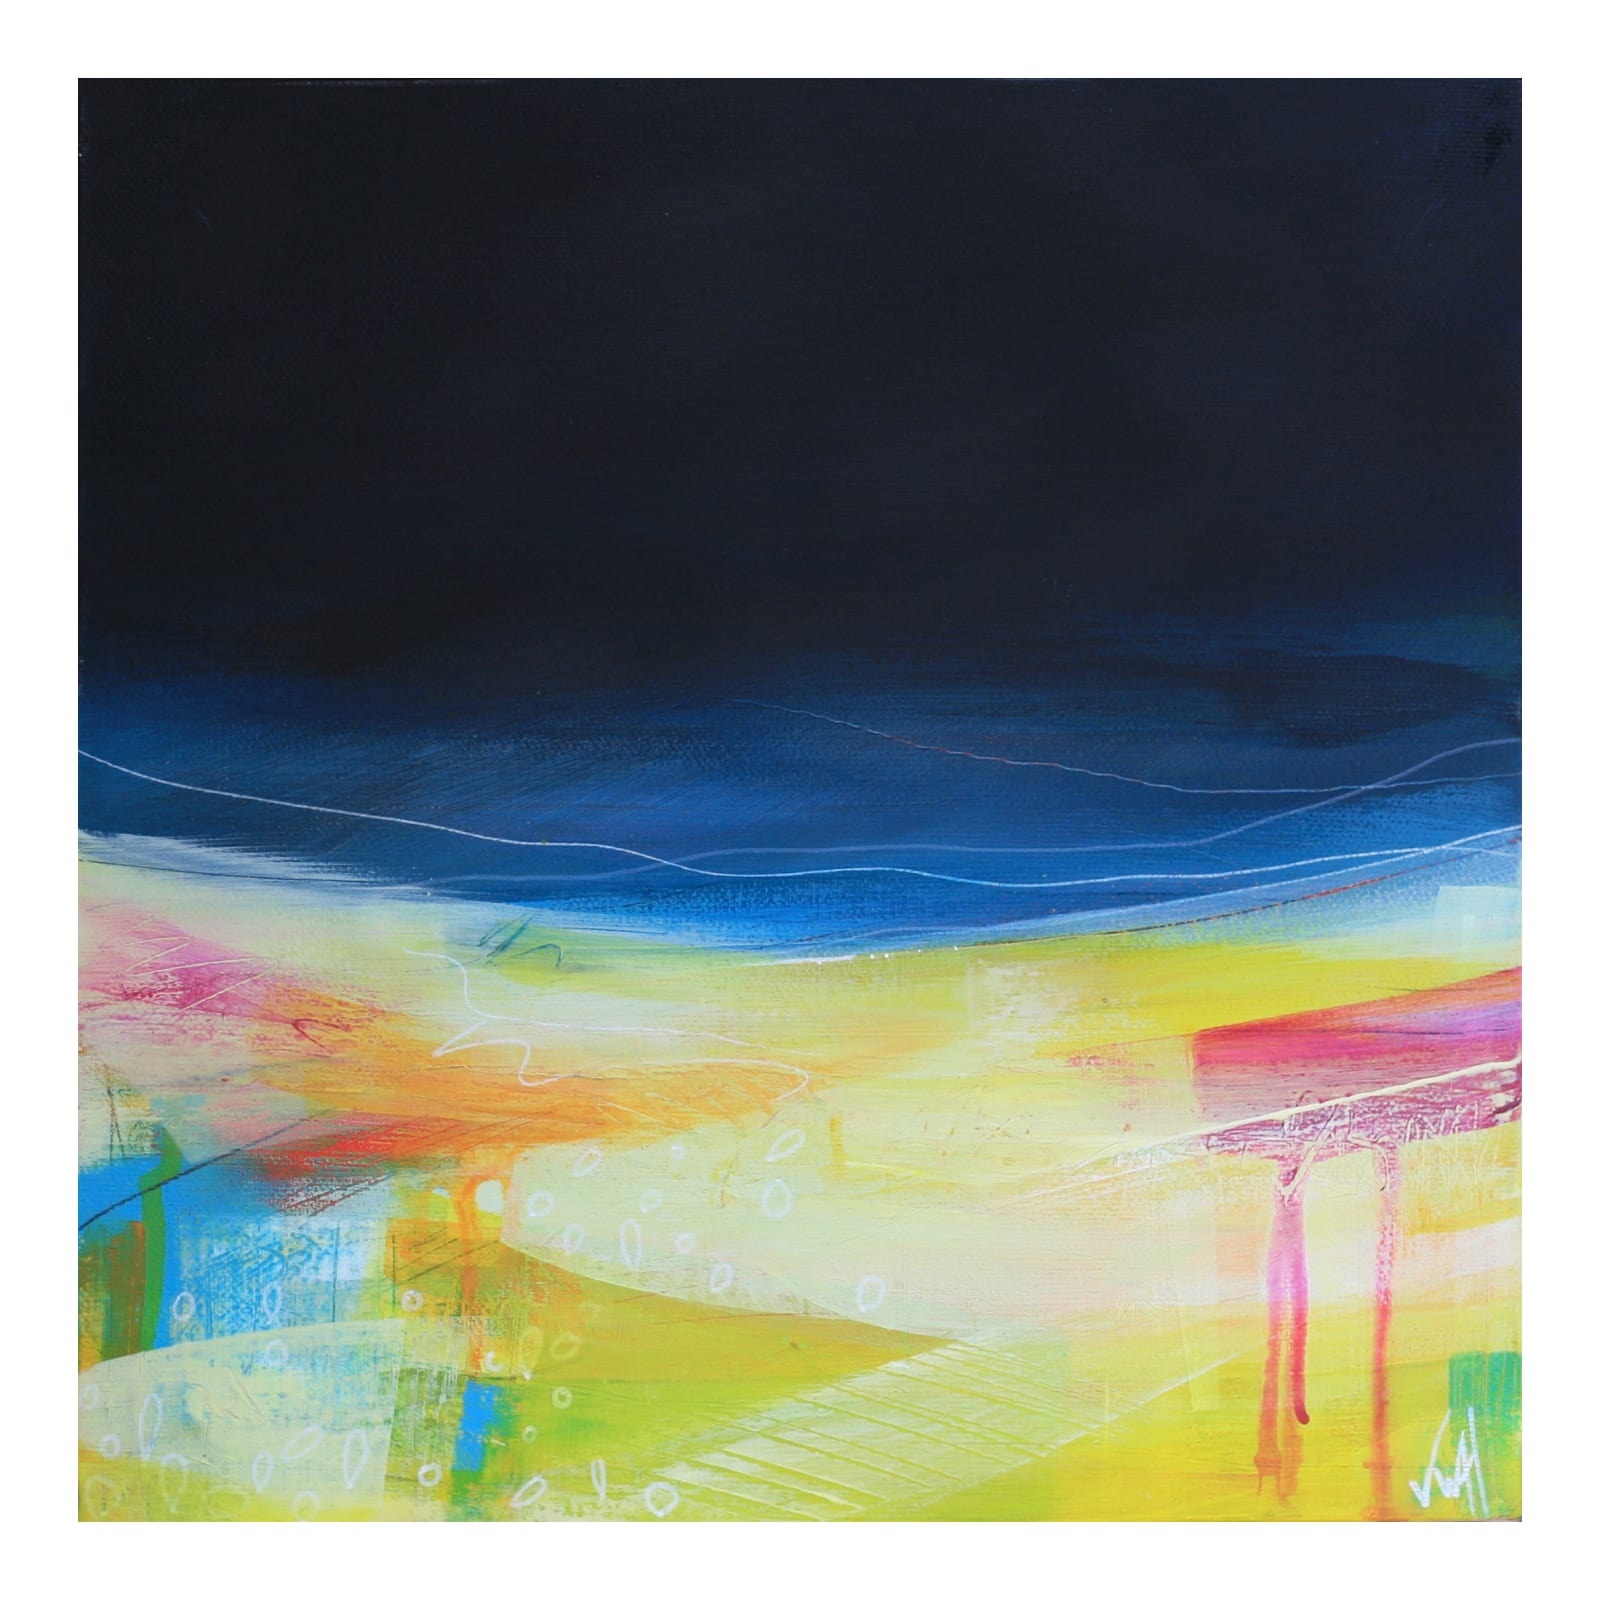 Victoria Wylie, Solstice Hues